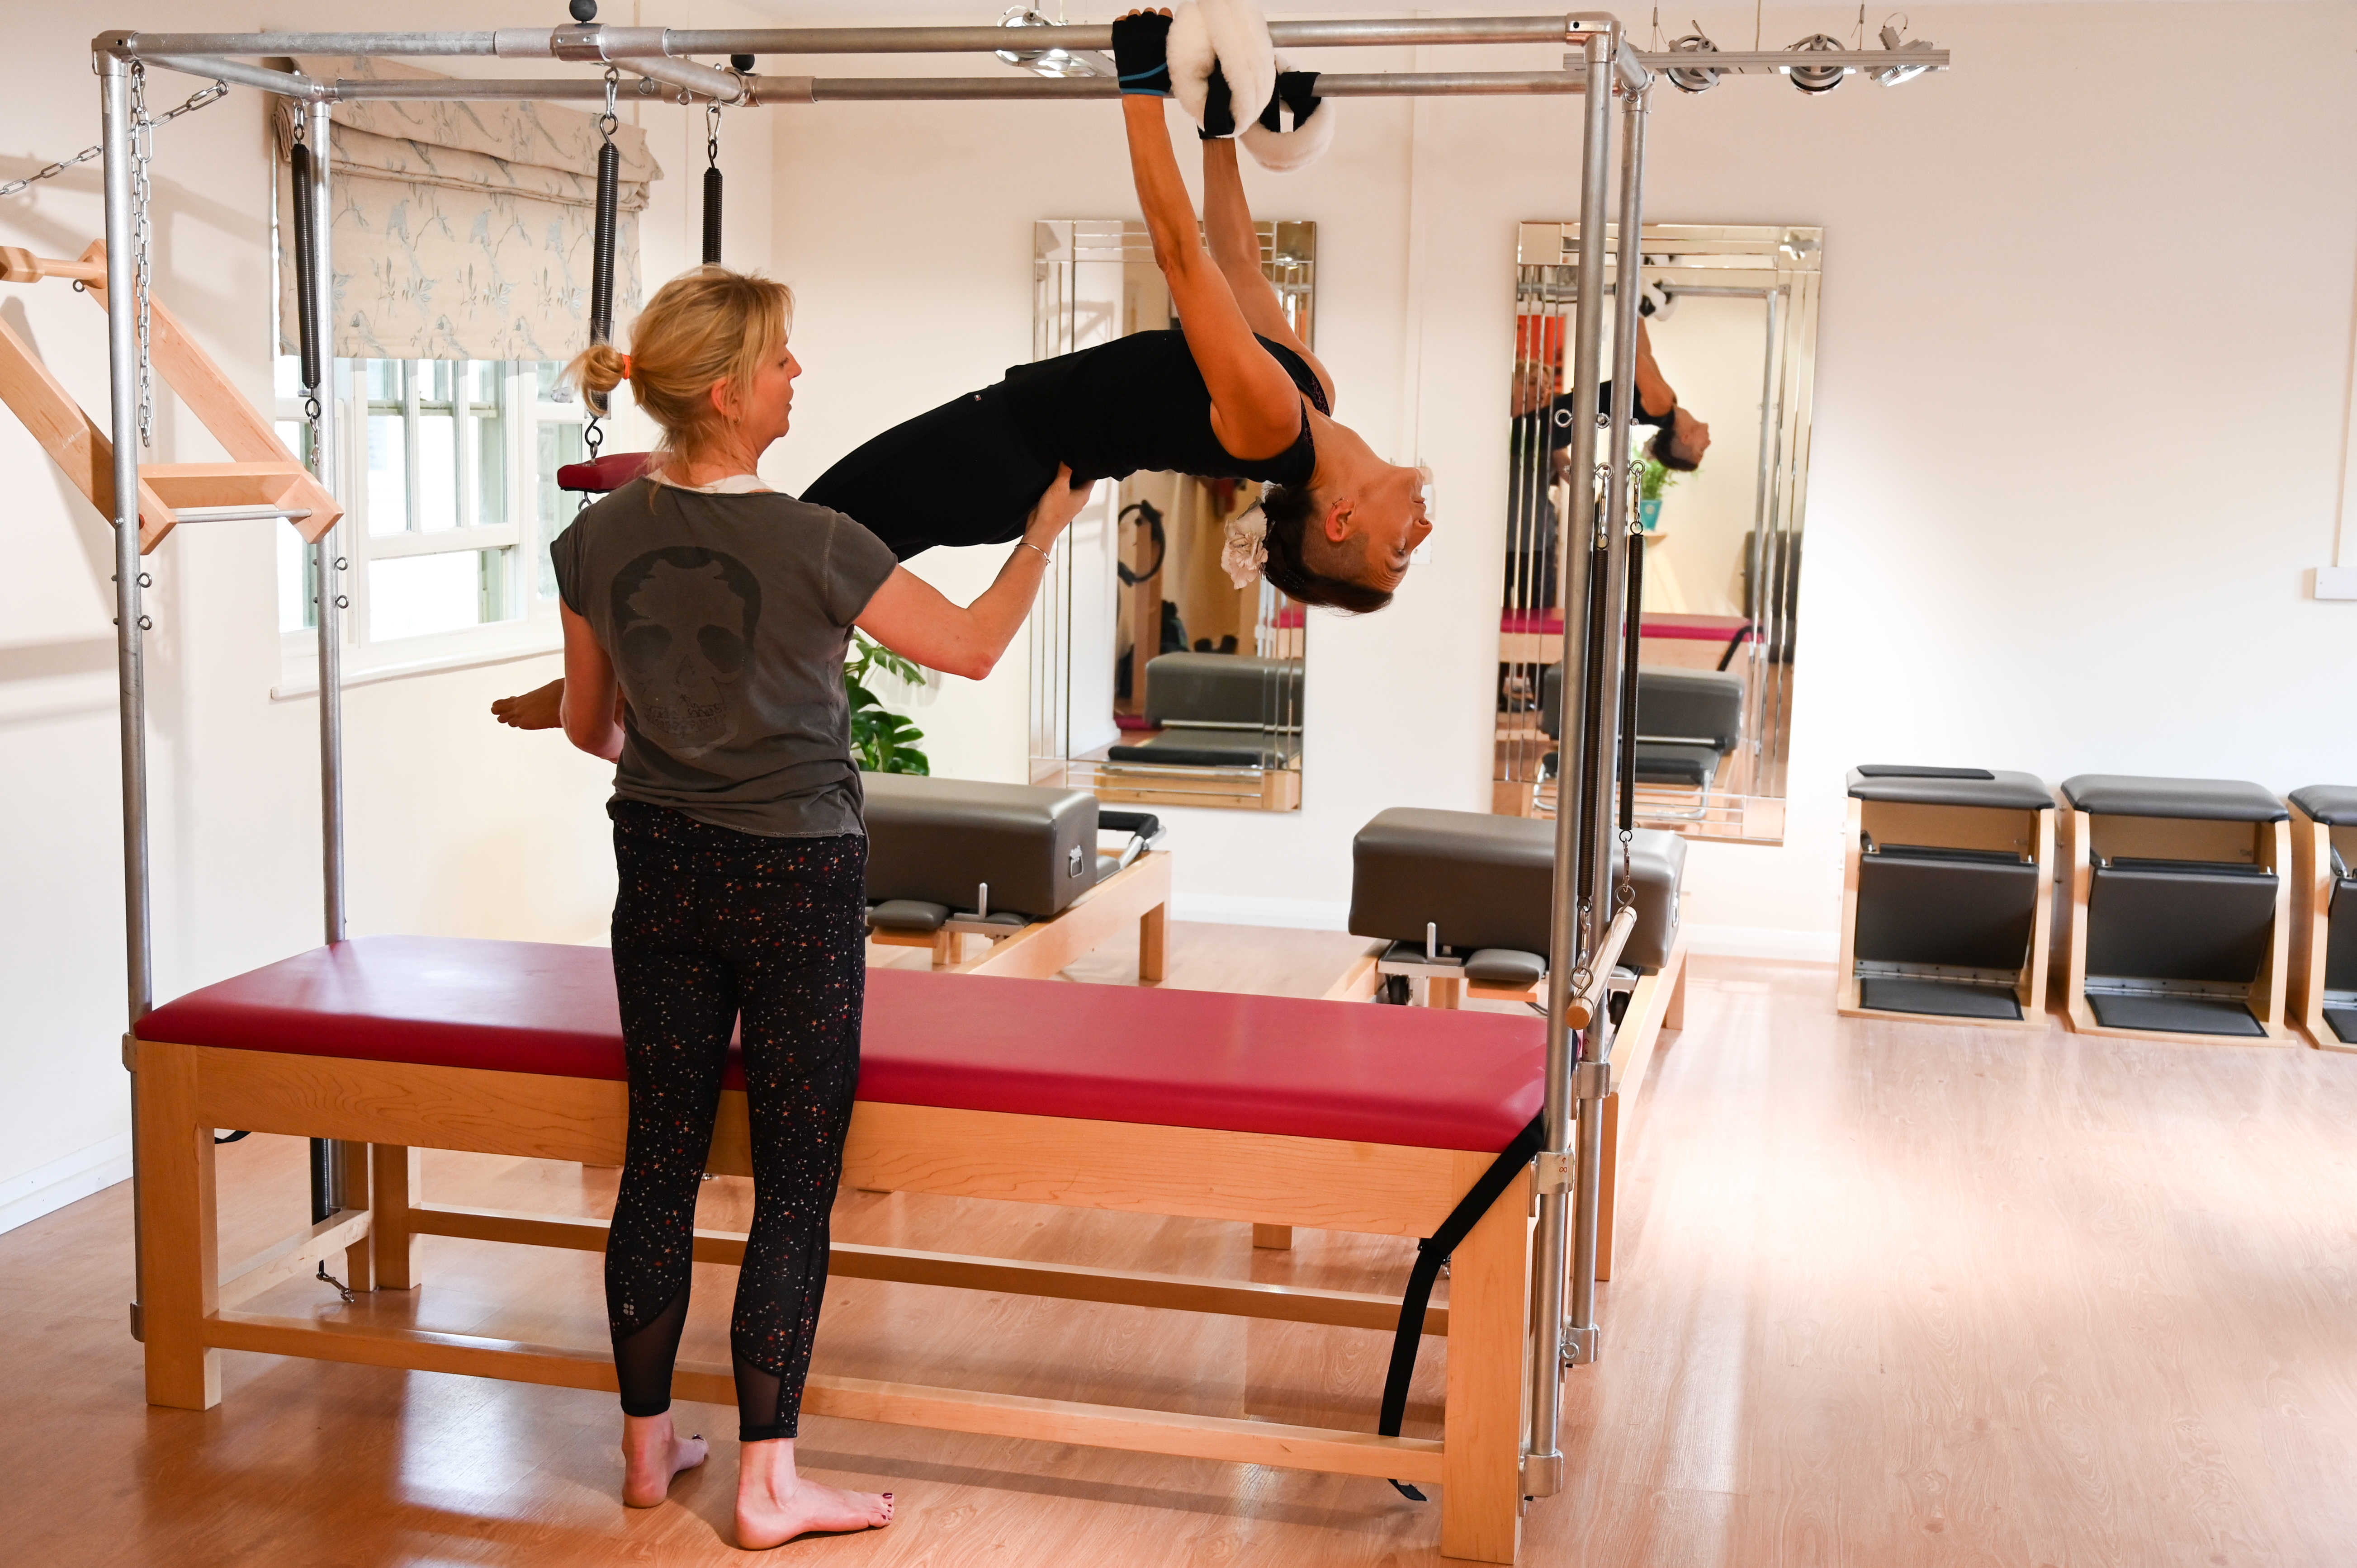 Pilates equipment class in Cirencester